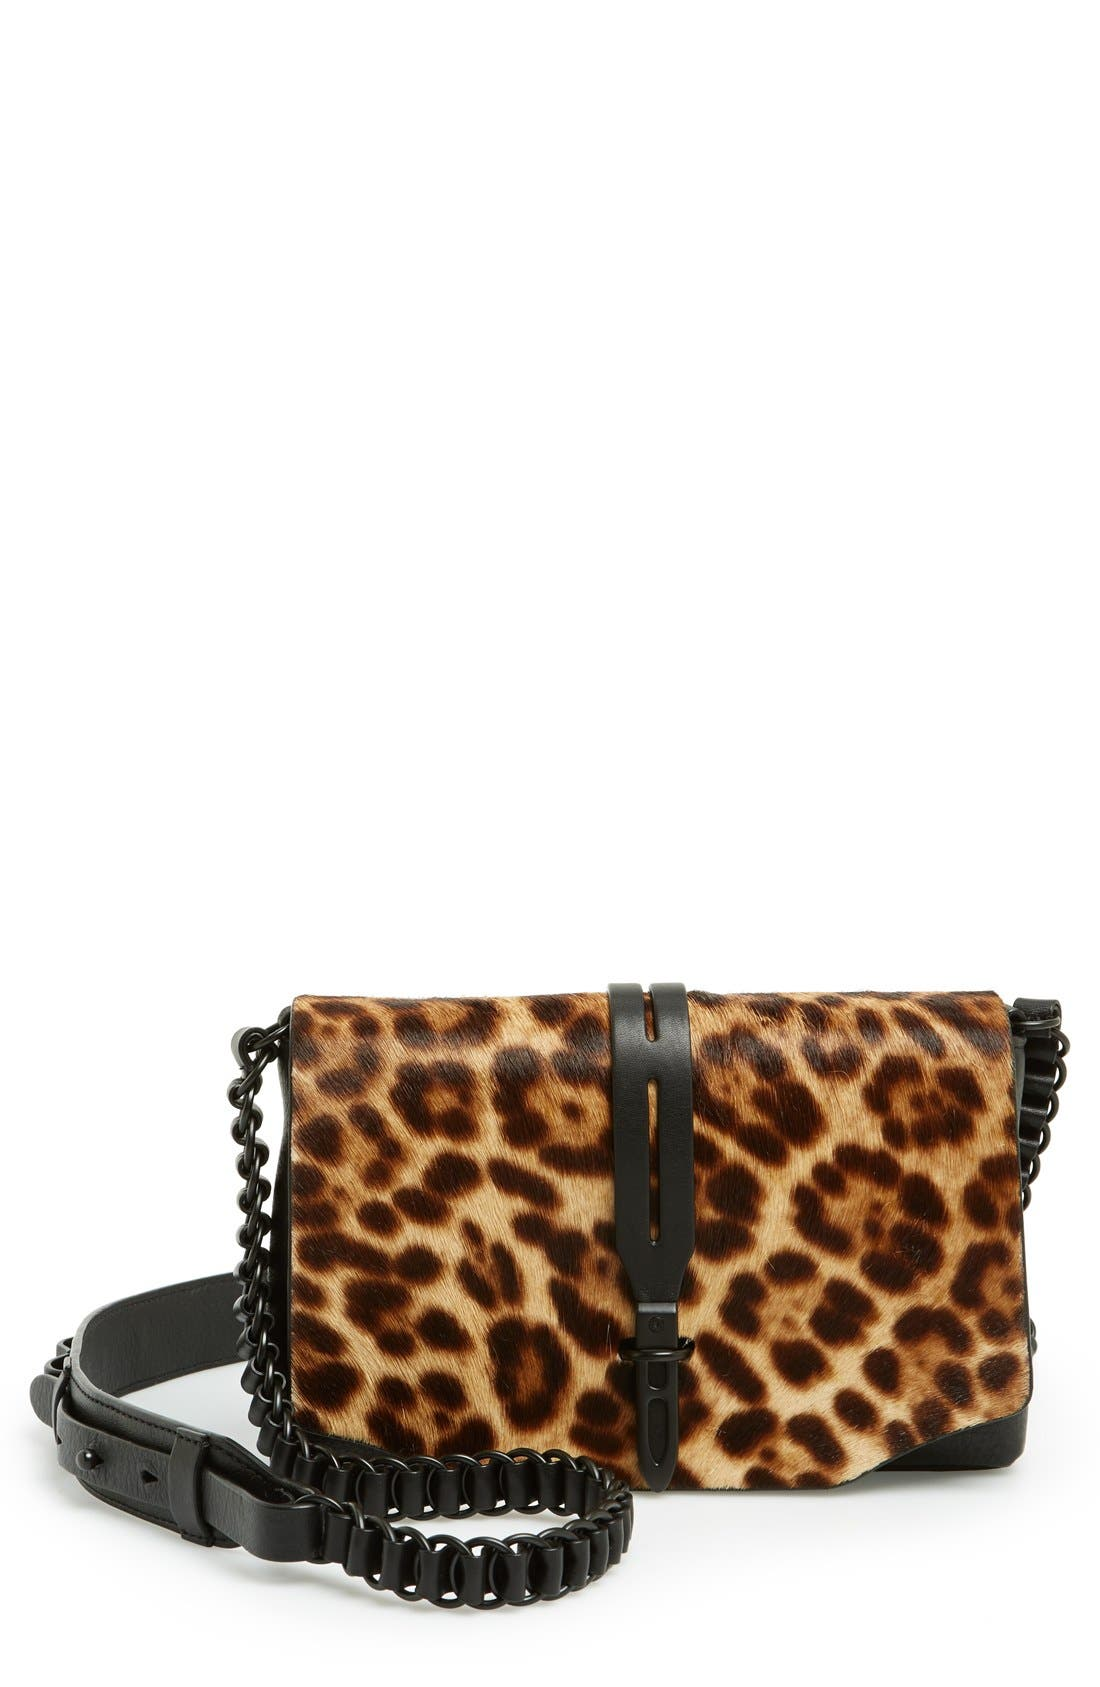 Alternate Image 1 Selected - rag & bone 'Mini Enfield' Genuine Calf Hair & Leather Crossbody Bag